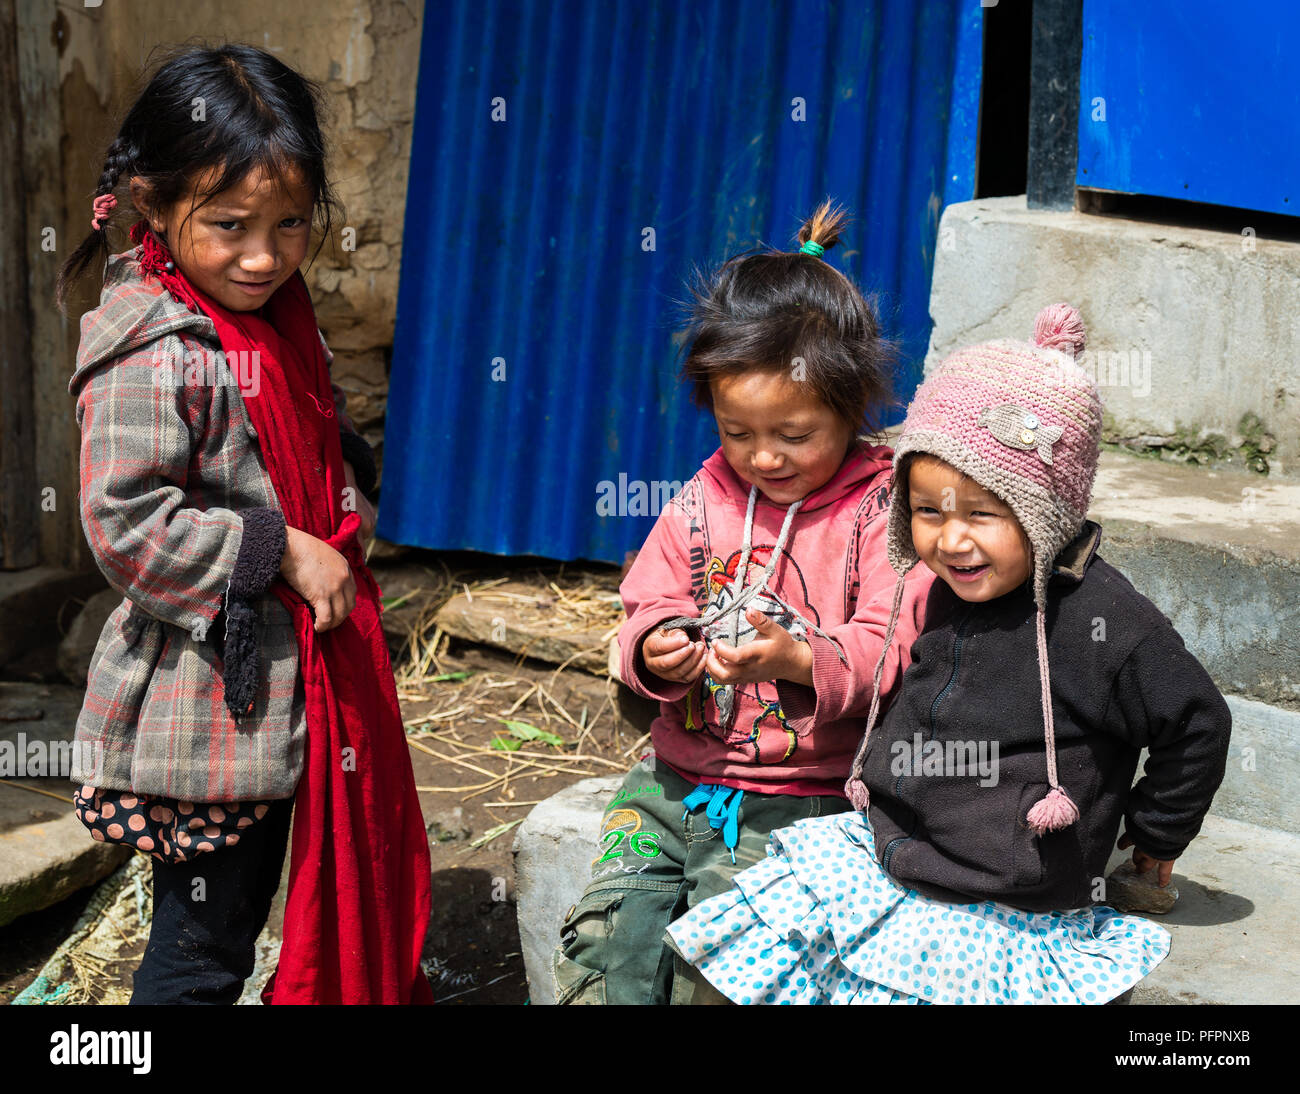 LEANNE: Nepali Girls Playing And Teasing